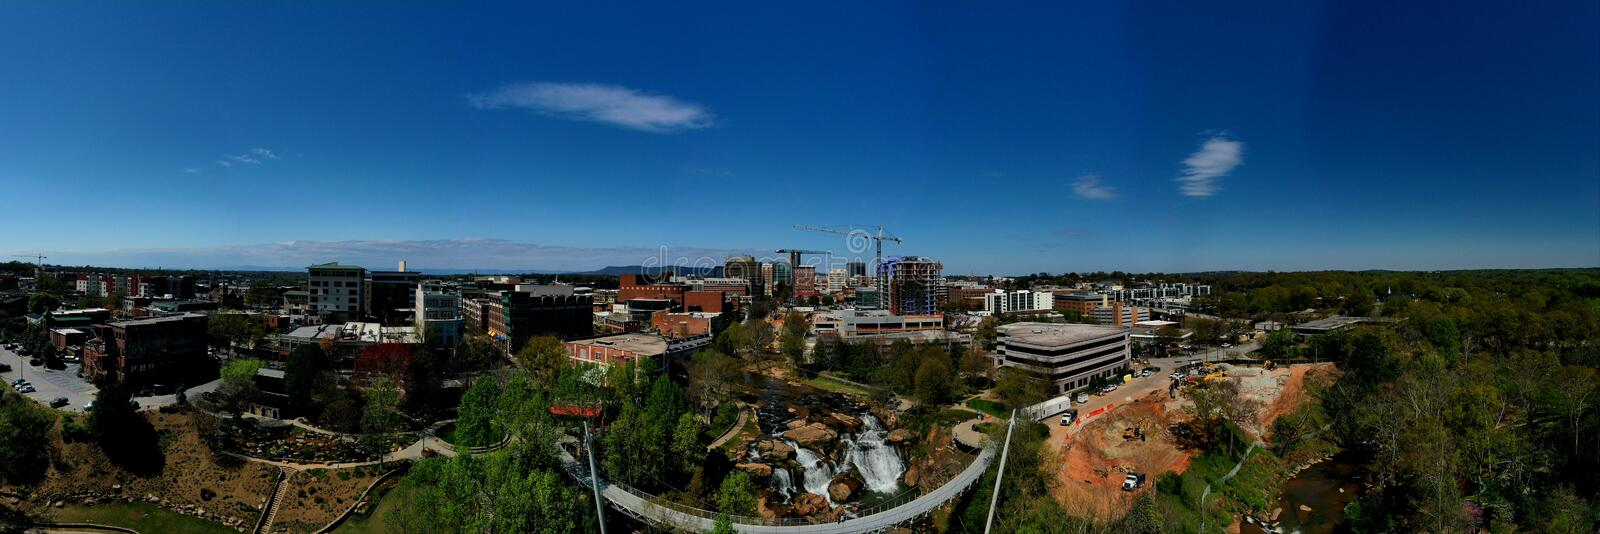 City of Greenville. Panoramic aerial view of city of Greenville, South Carolina with Reedy Falls Bridge in centre royalty free stock photos